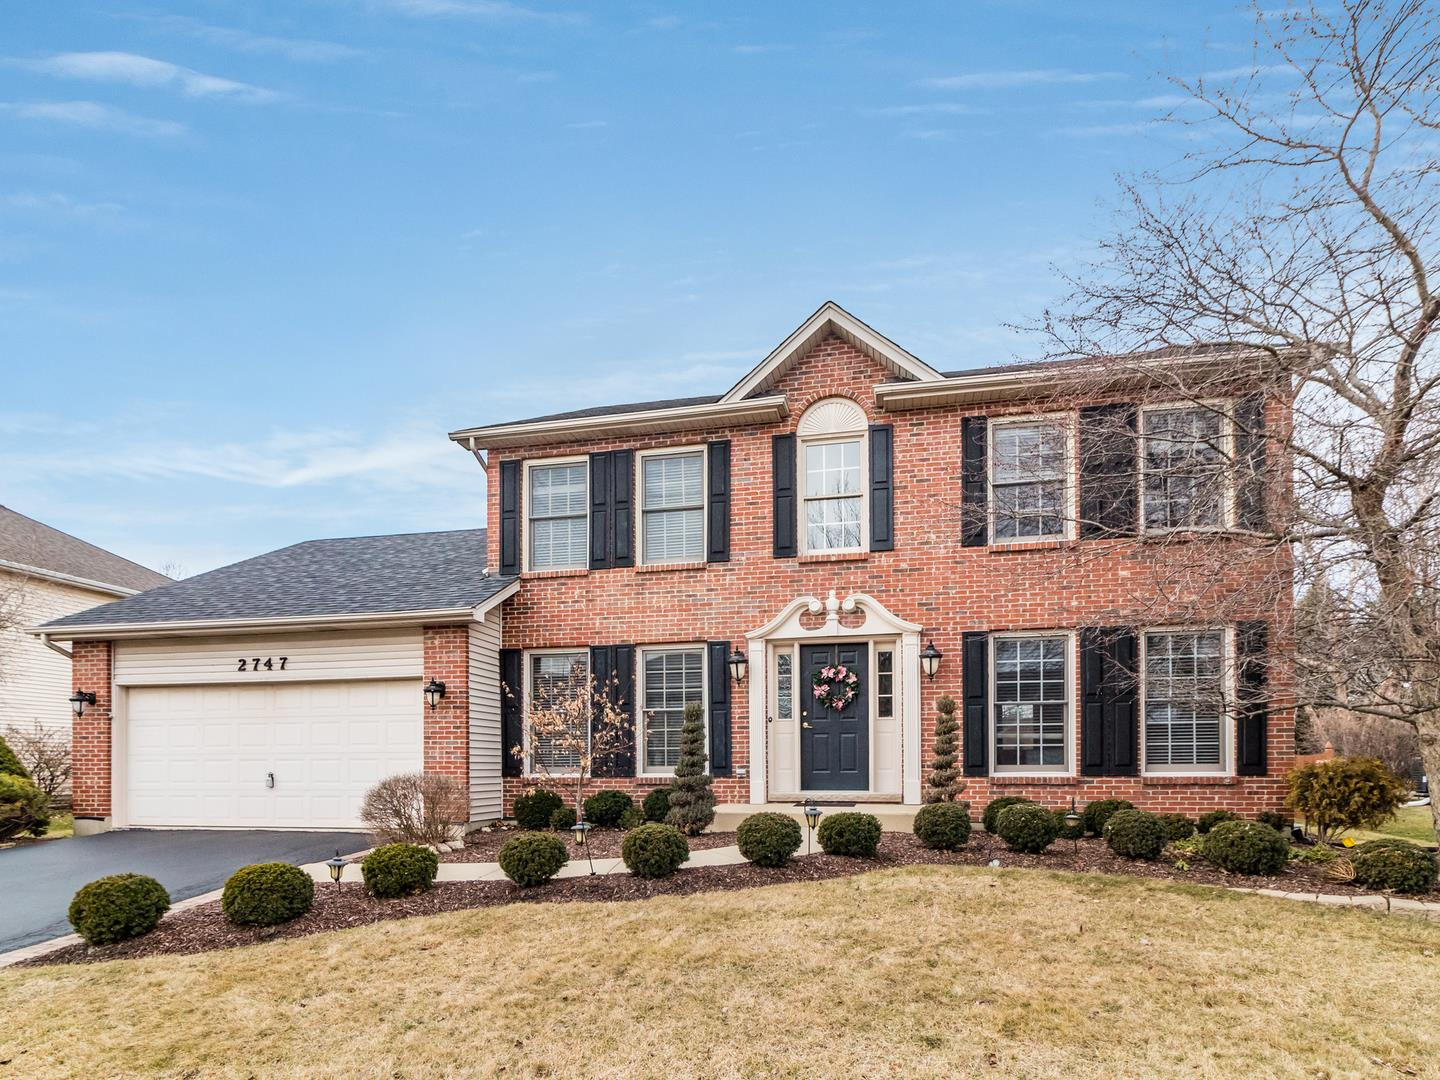 2747 Pennyroyal Circle, Naperville, IL 60564 - #: 10574159